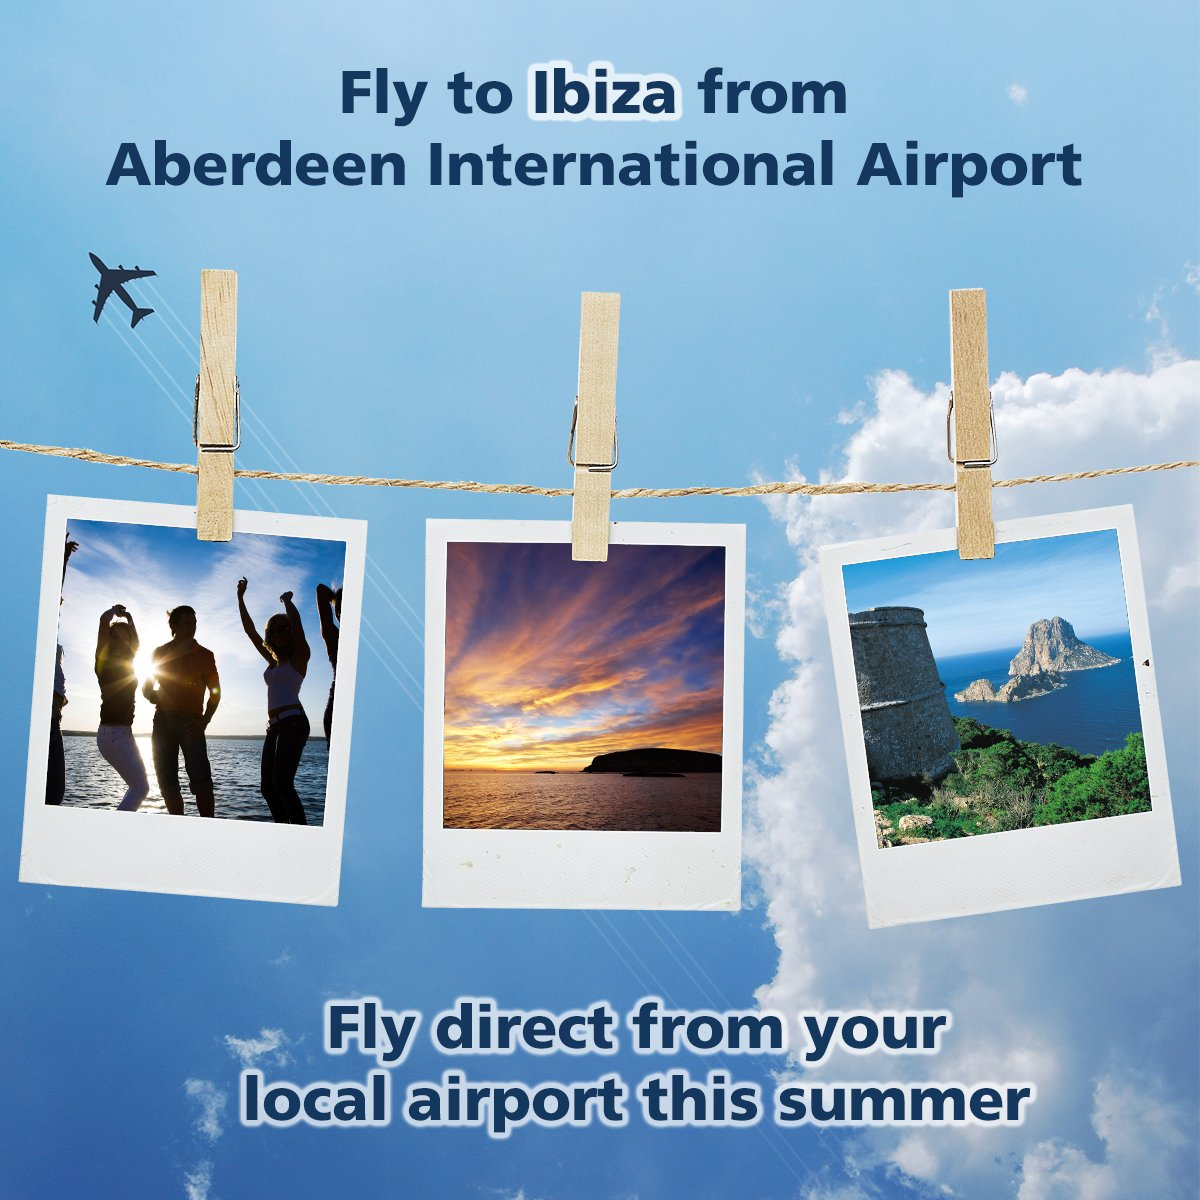 Fly direct to Ibiza from your local airport this summer!